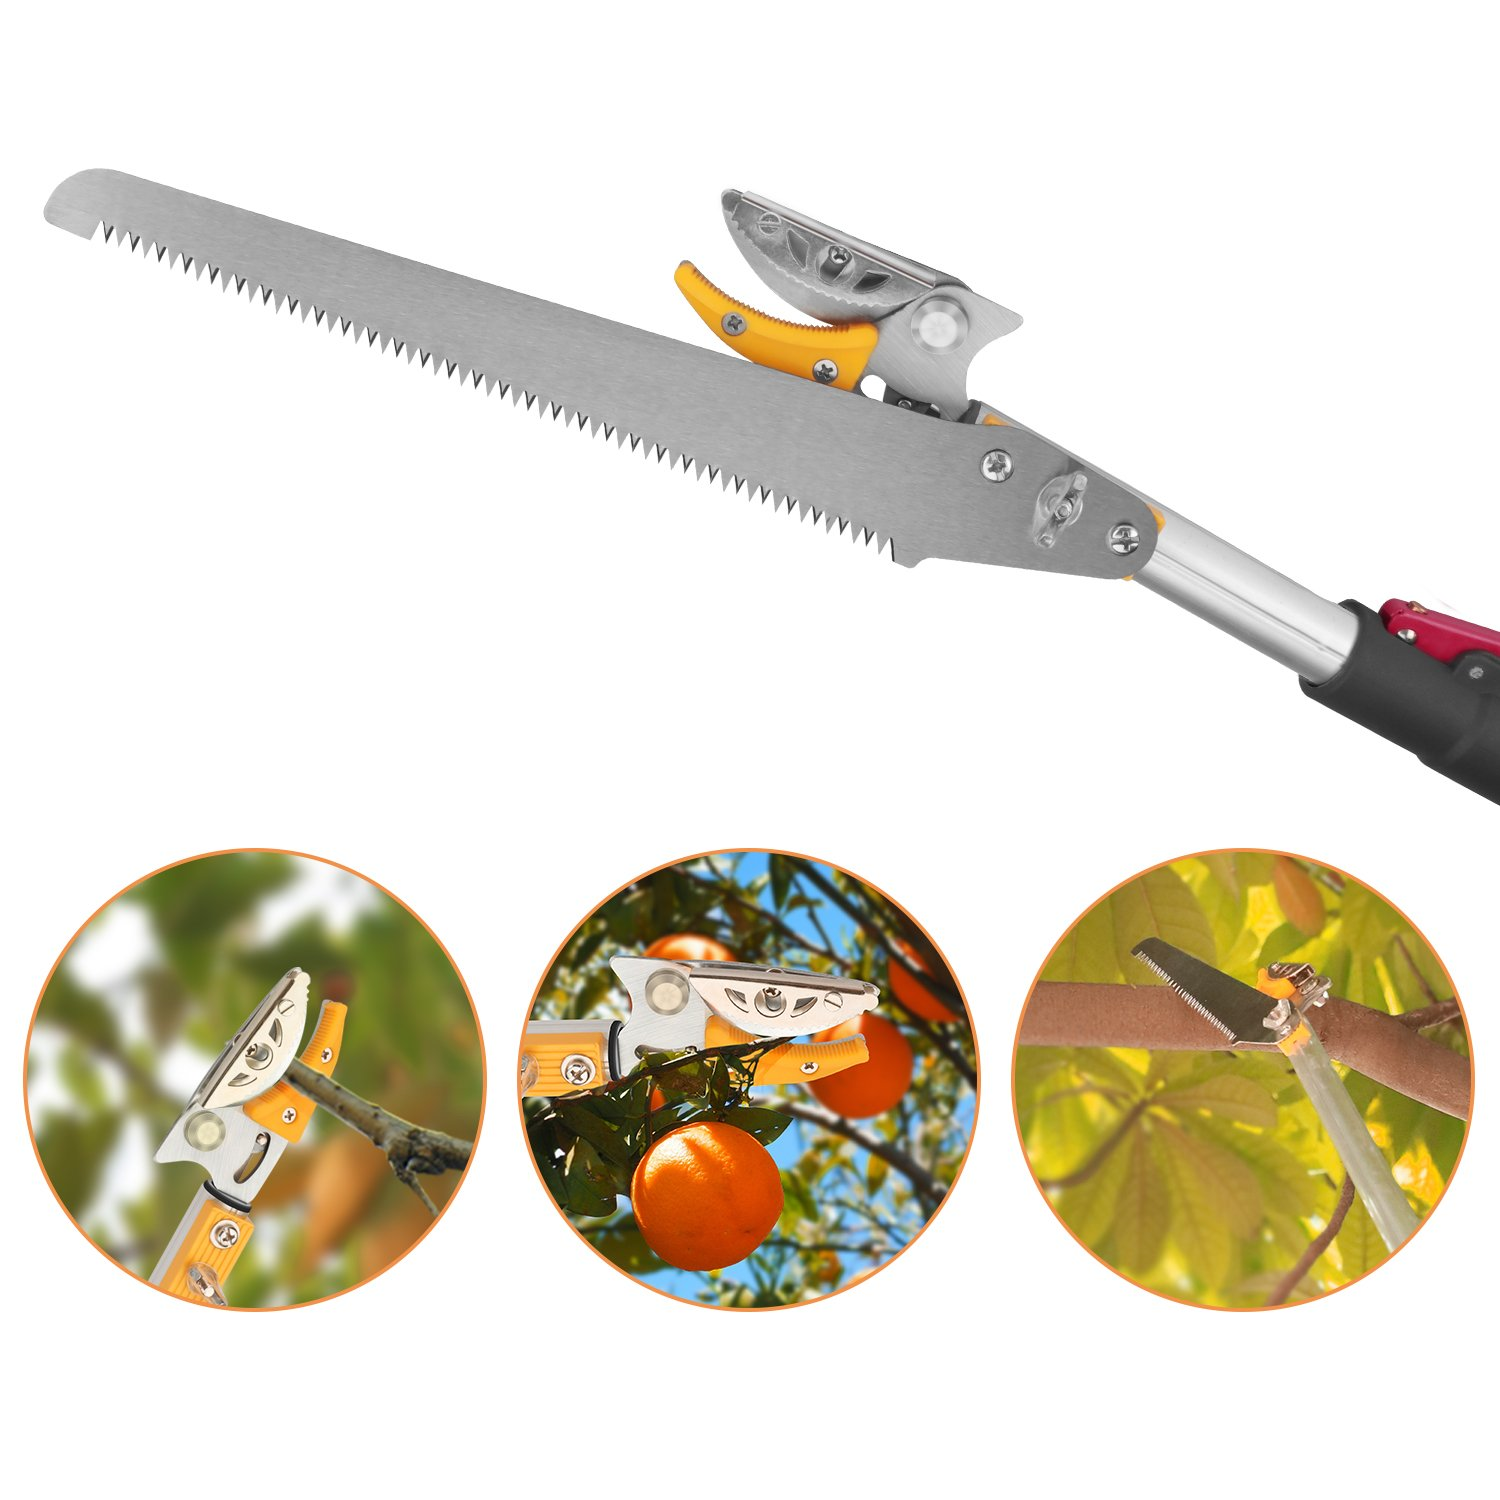 Belpink Long Tree Pruner With Pole Saw | Telescopic Long Reach Fruit Picker 5-13 Feet| Handled Garden bypass Lopper Tree Trimmer Pruning Tool (4.5-9.6 Feet) by Belpink (Image #3)